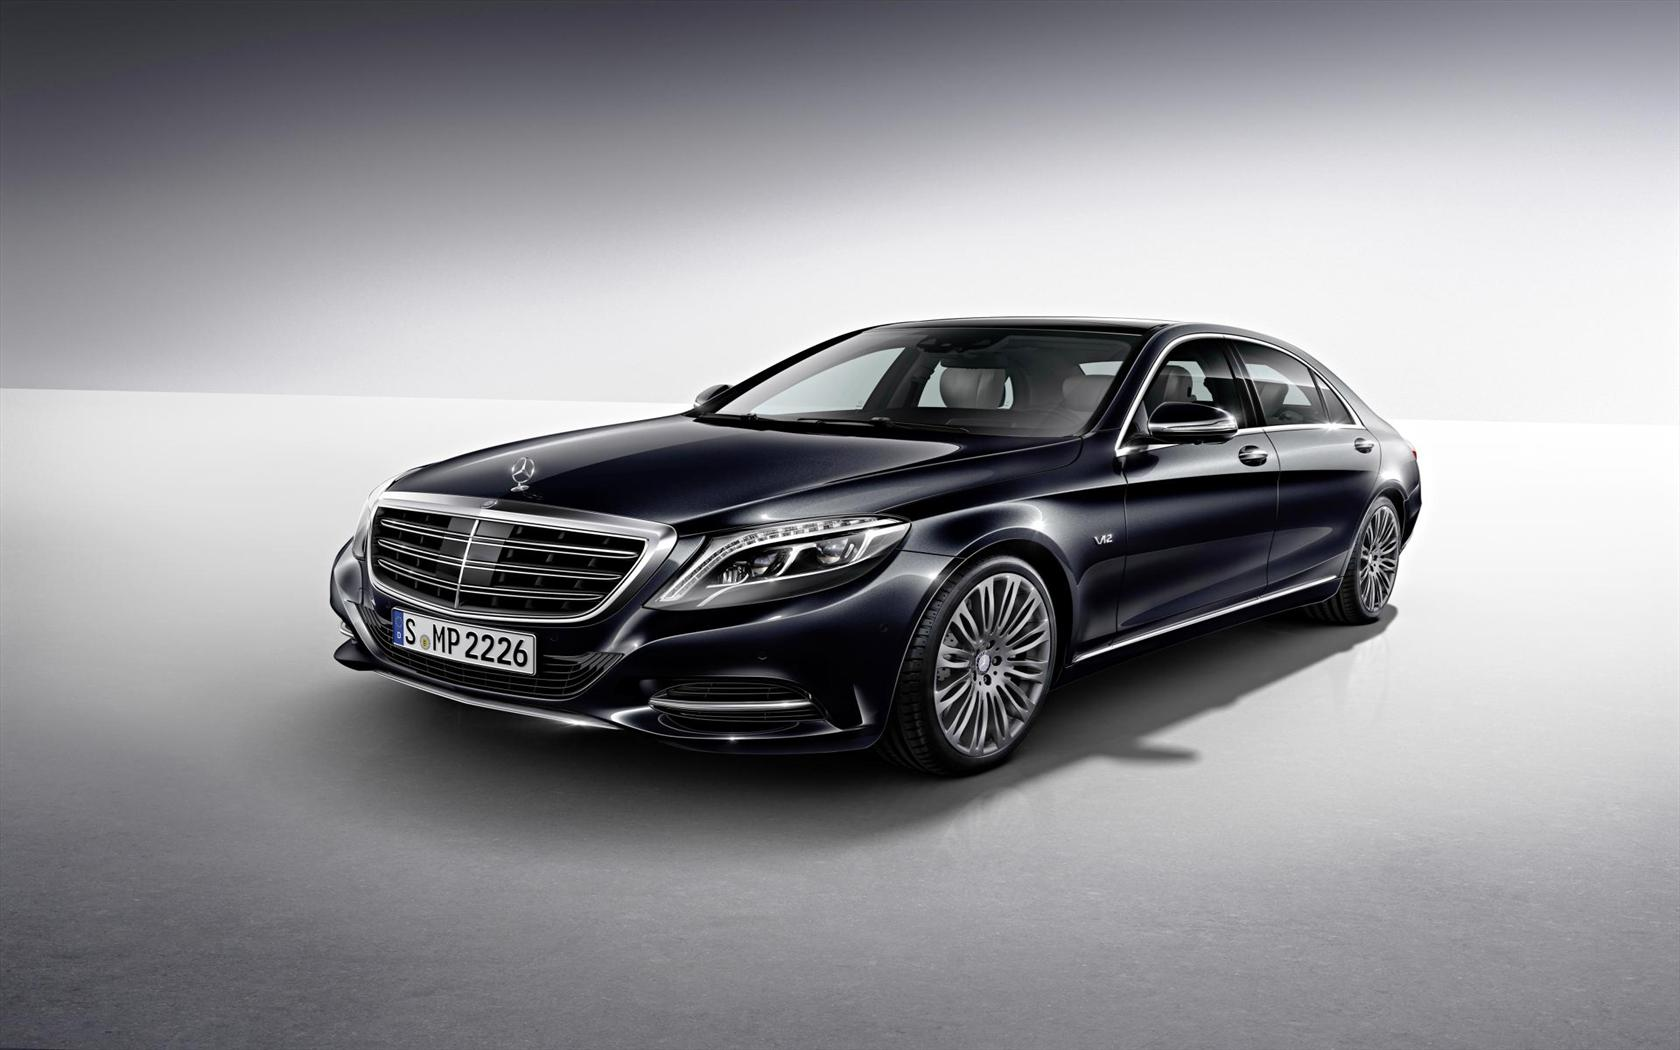 2015 mercedes benz s600 image for Mercedes benz s600 amg